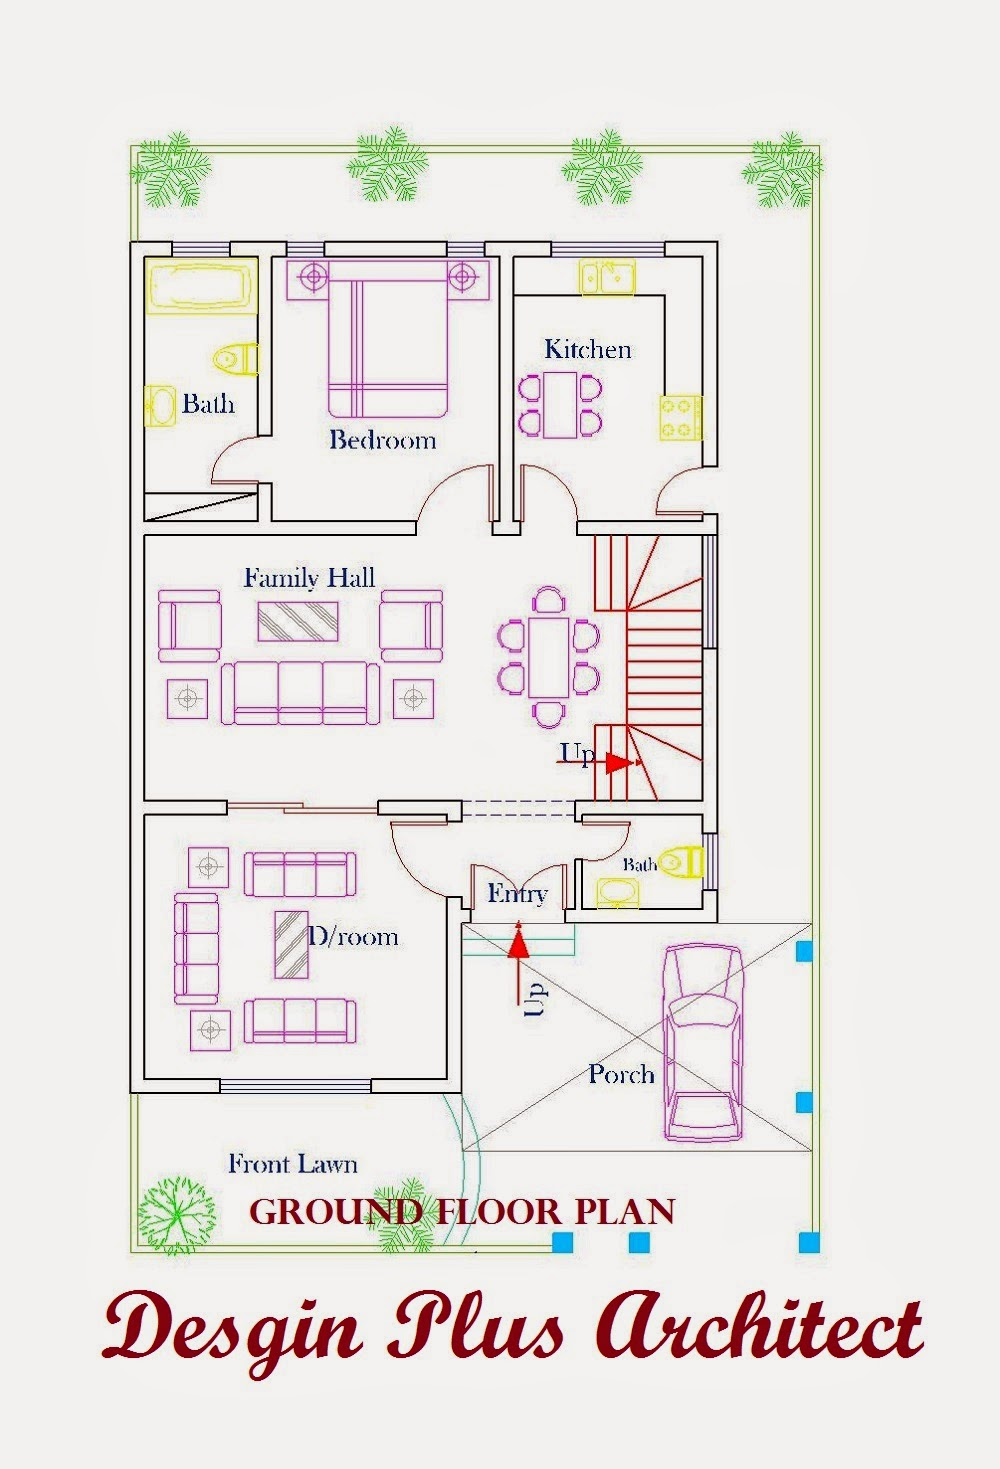 Home Plans In Pakistan, Home Decor, Architect Designer